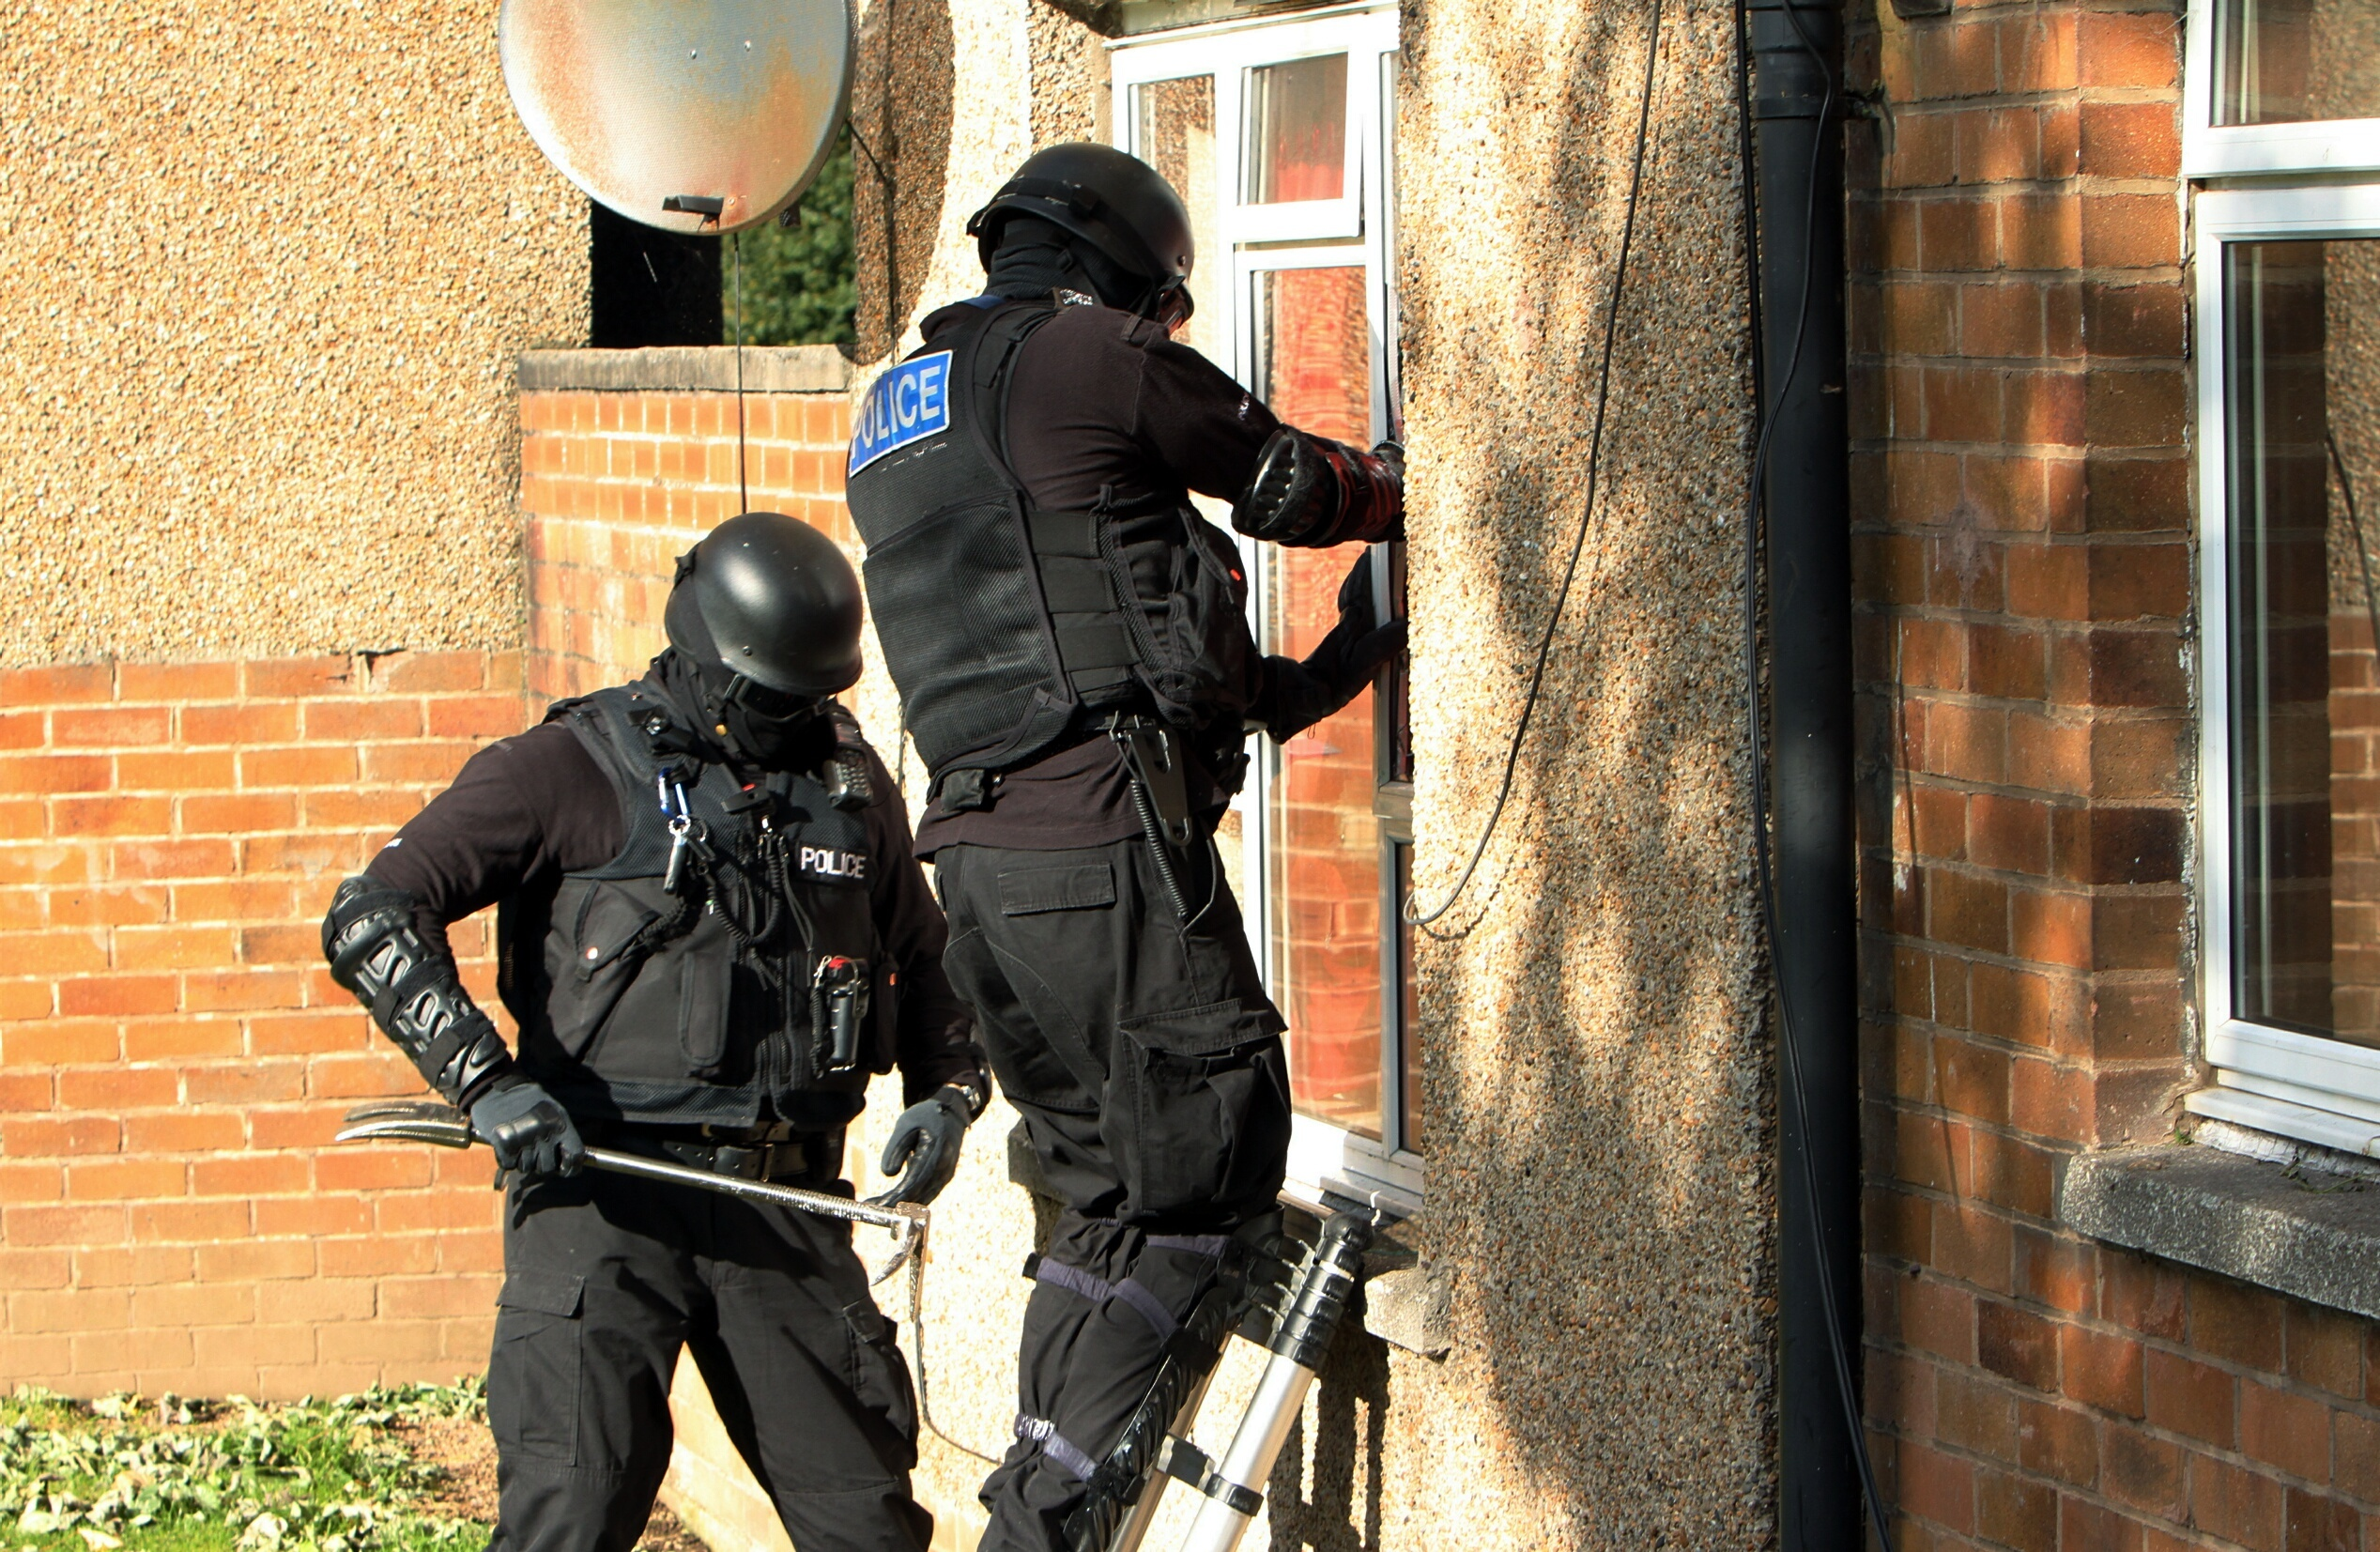 Police carry out a drugs raid on a house.